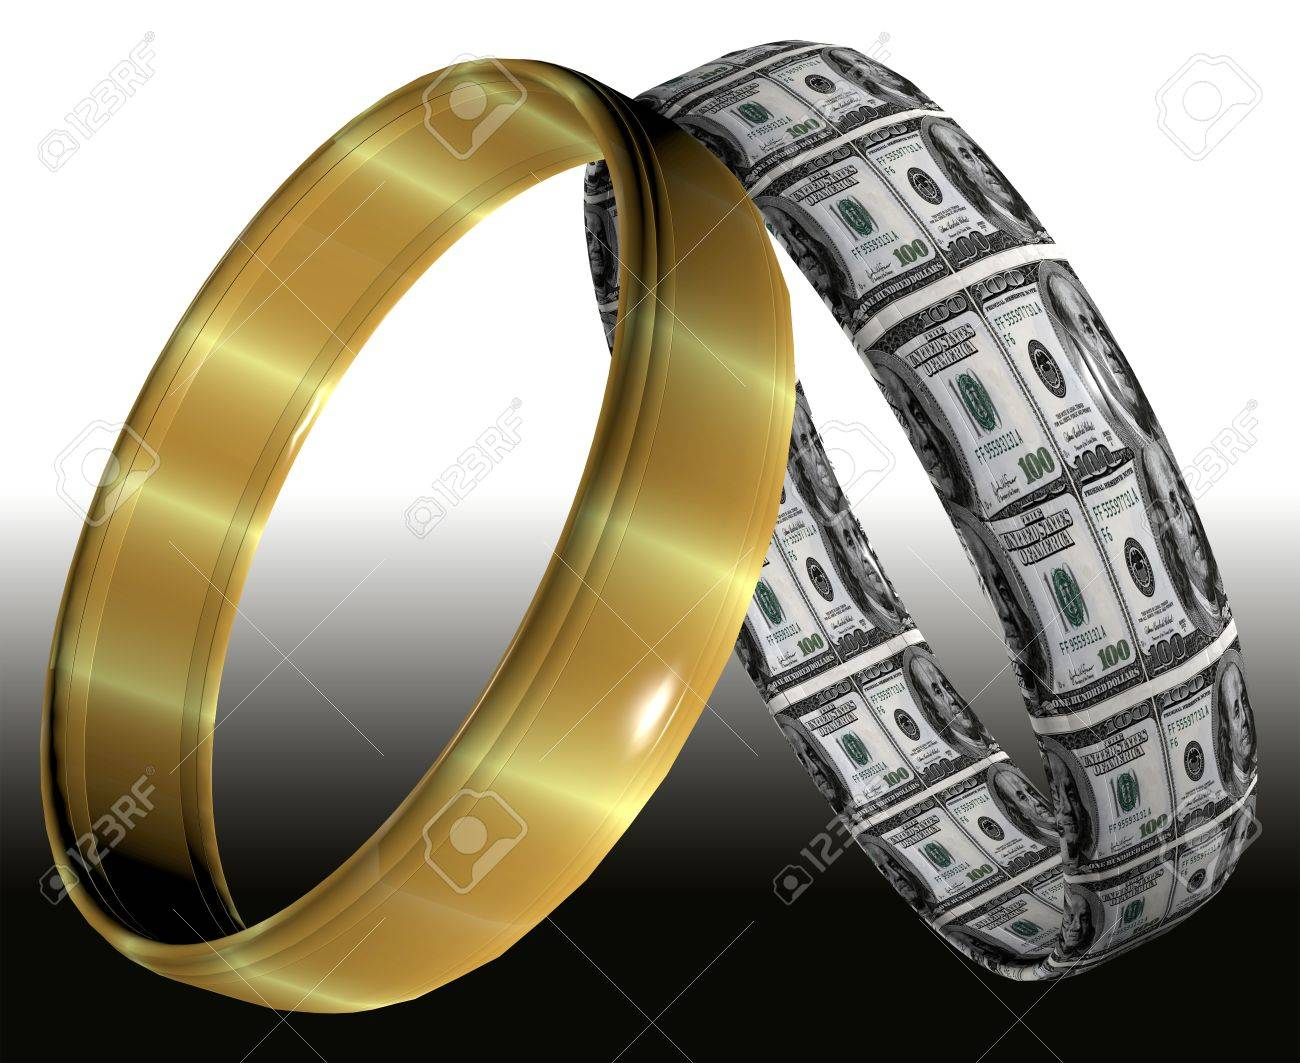 Stock Photo  Two Different Wedding Rings Symbolizing Prenuptial Contracts  And Agreements On The Consequences Of Divorce